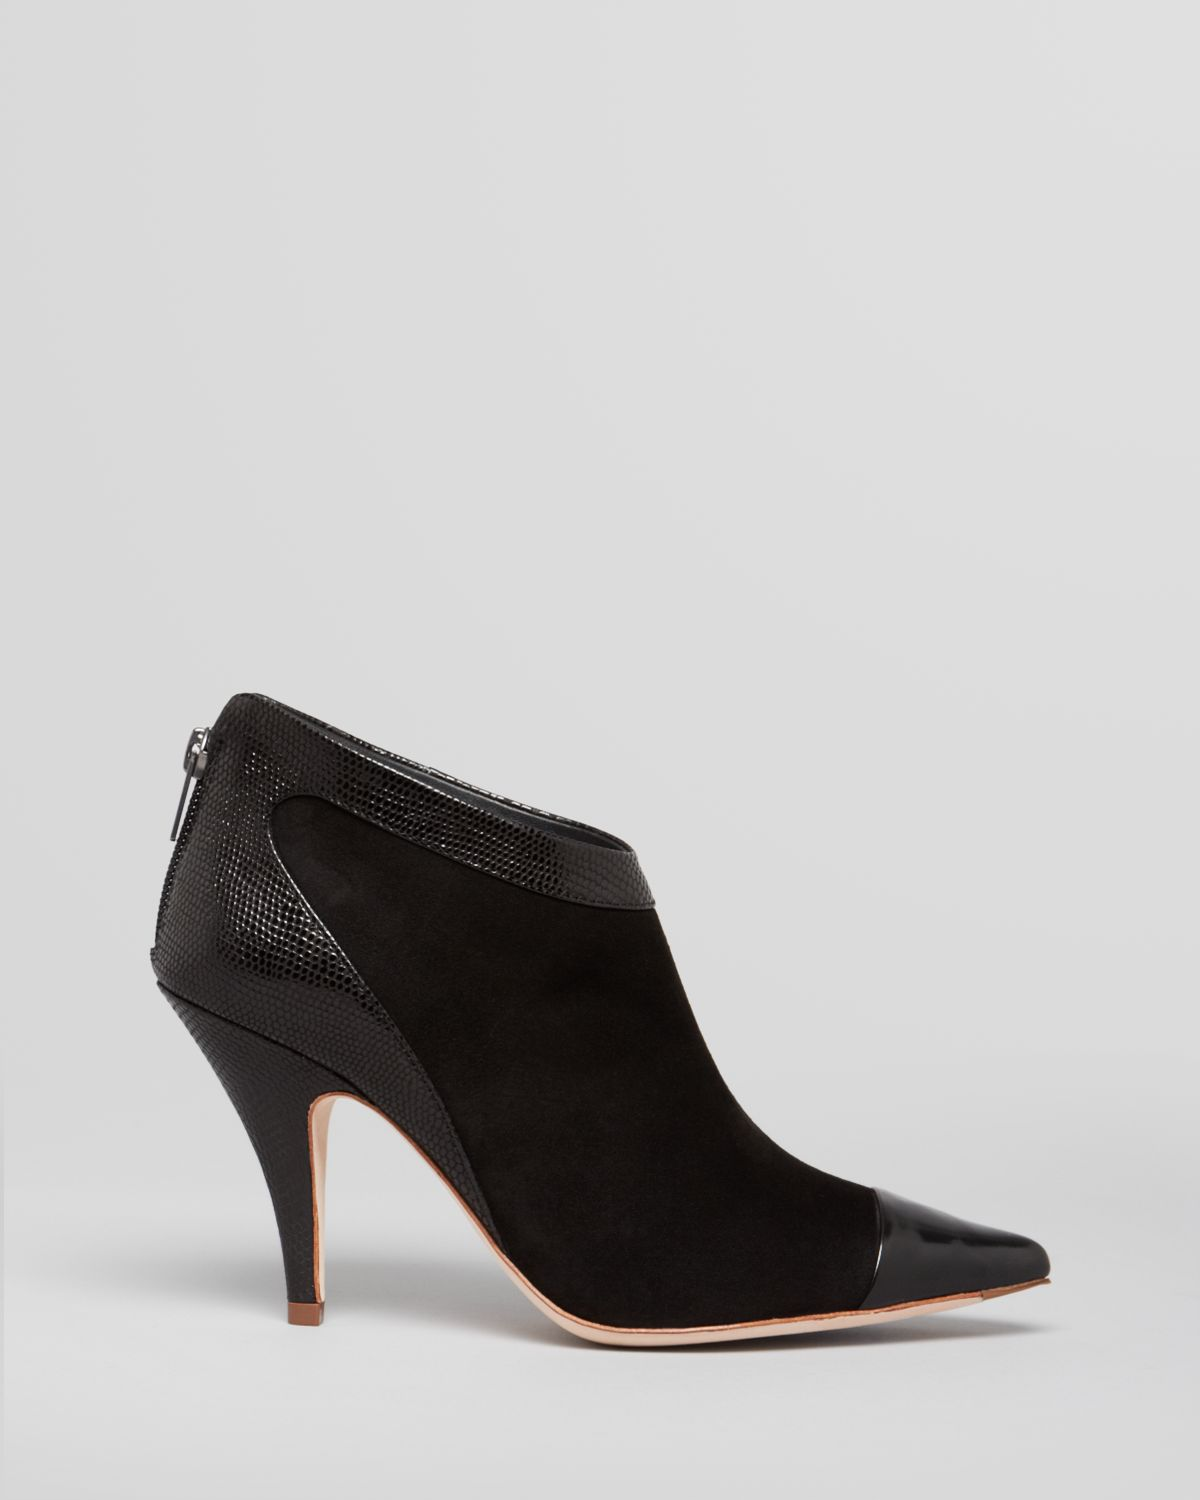 Elie Tahari Pointed-Toe Leather-Trimmed Ankle Boots cheap sale websites big discount 14x3gRrt